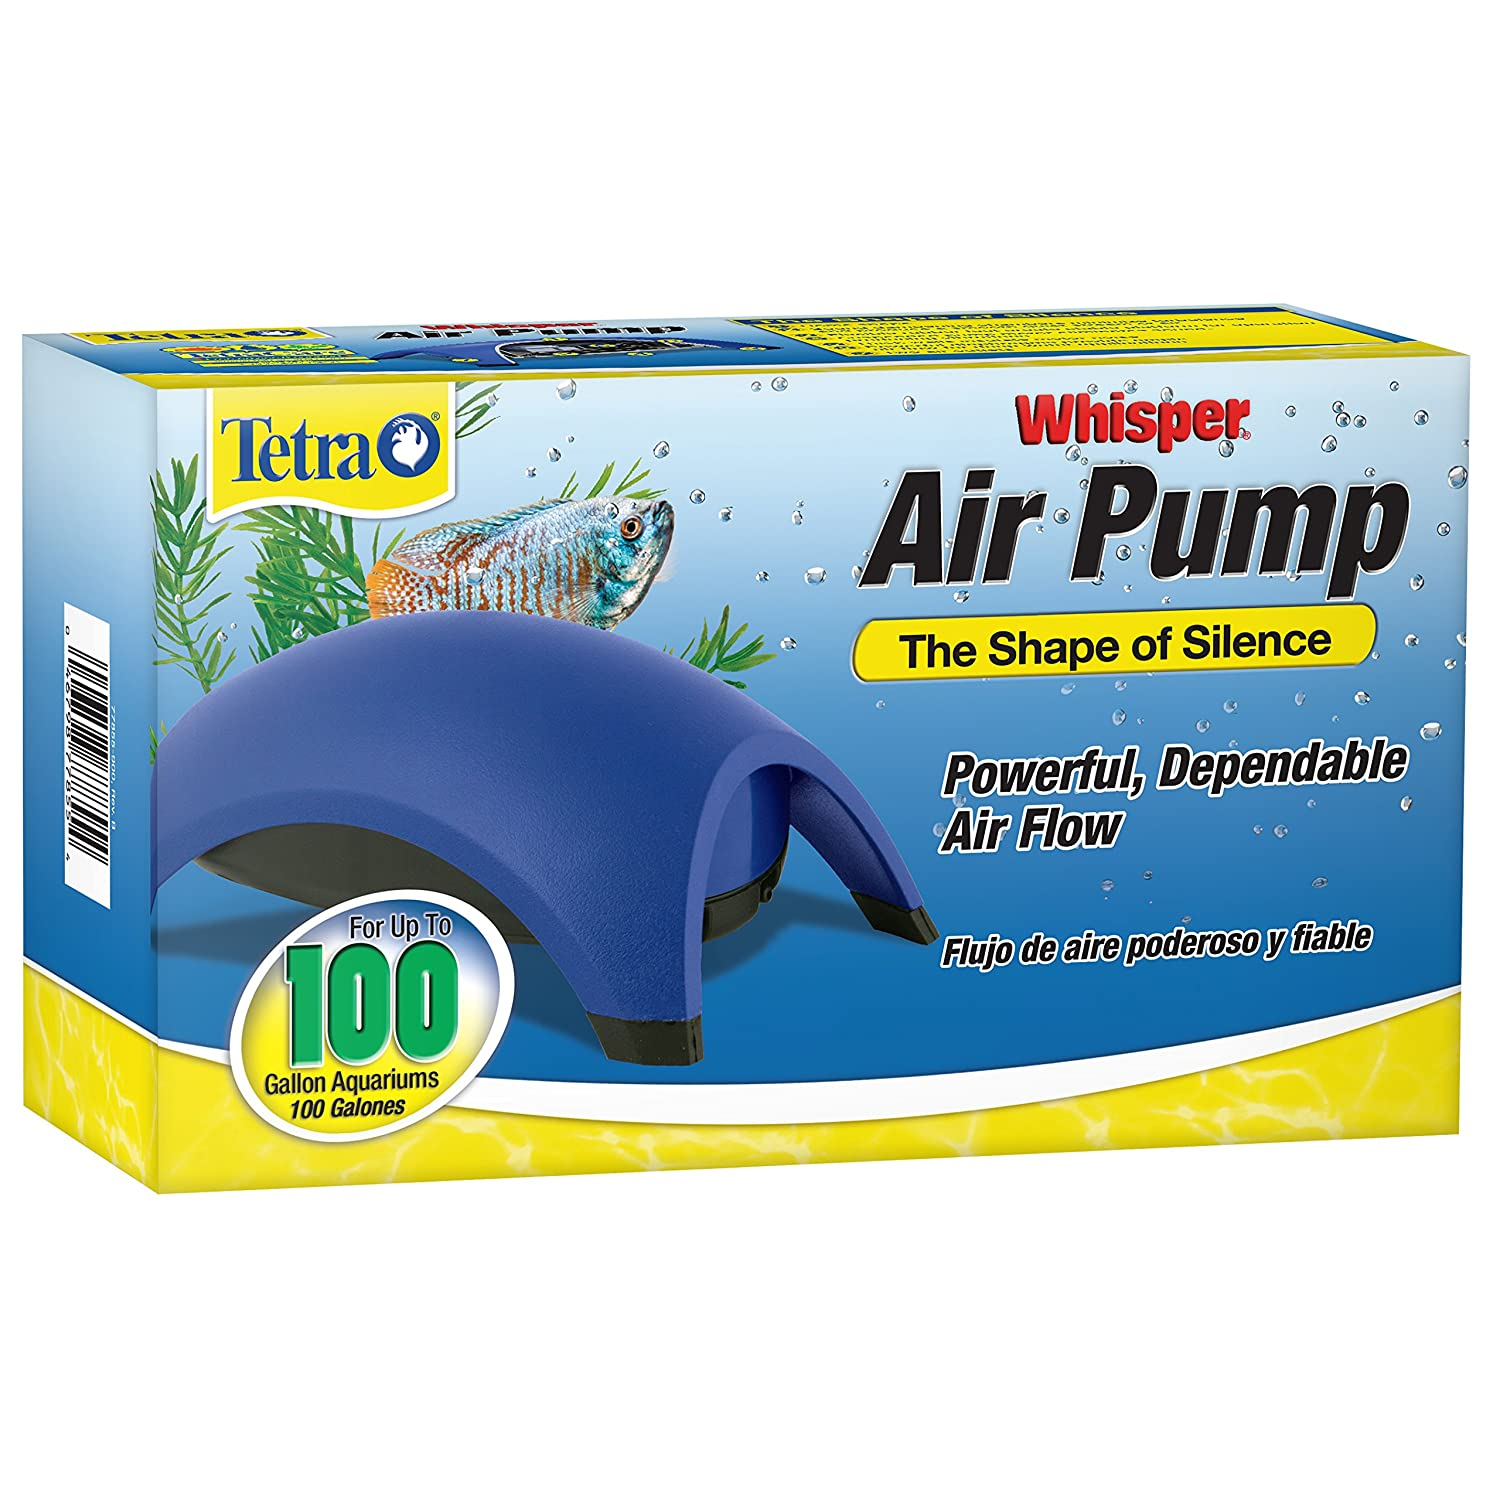 919Nc0VheXL._SL1500_ amazon com tetra 77855 whisper air pump, 100 gallon aquarium  at bakdesigns.co